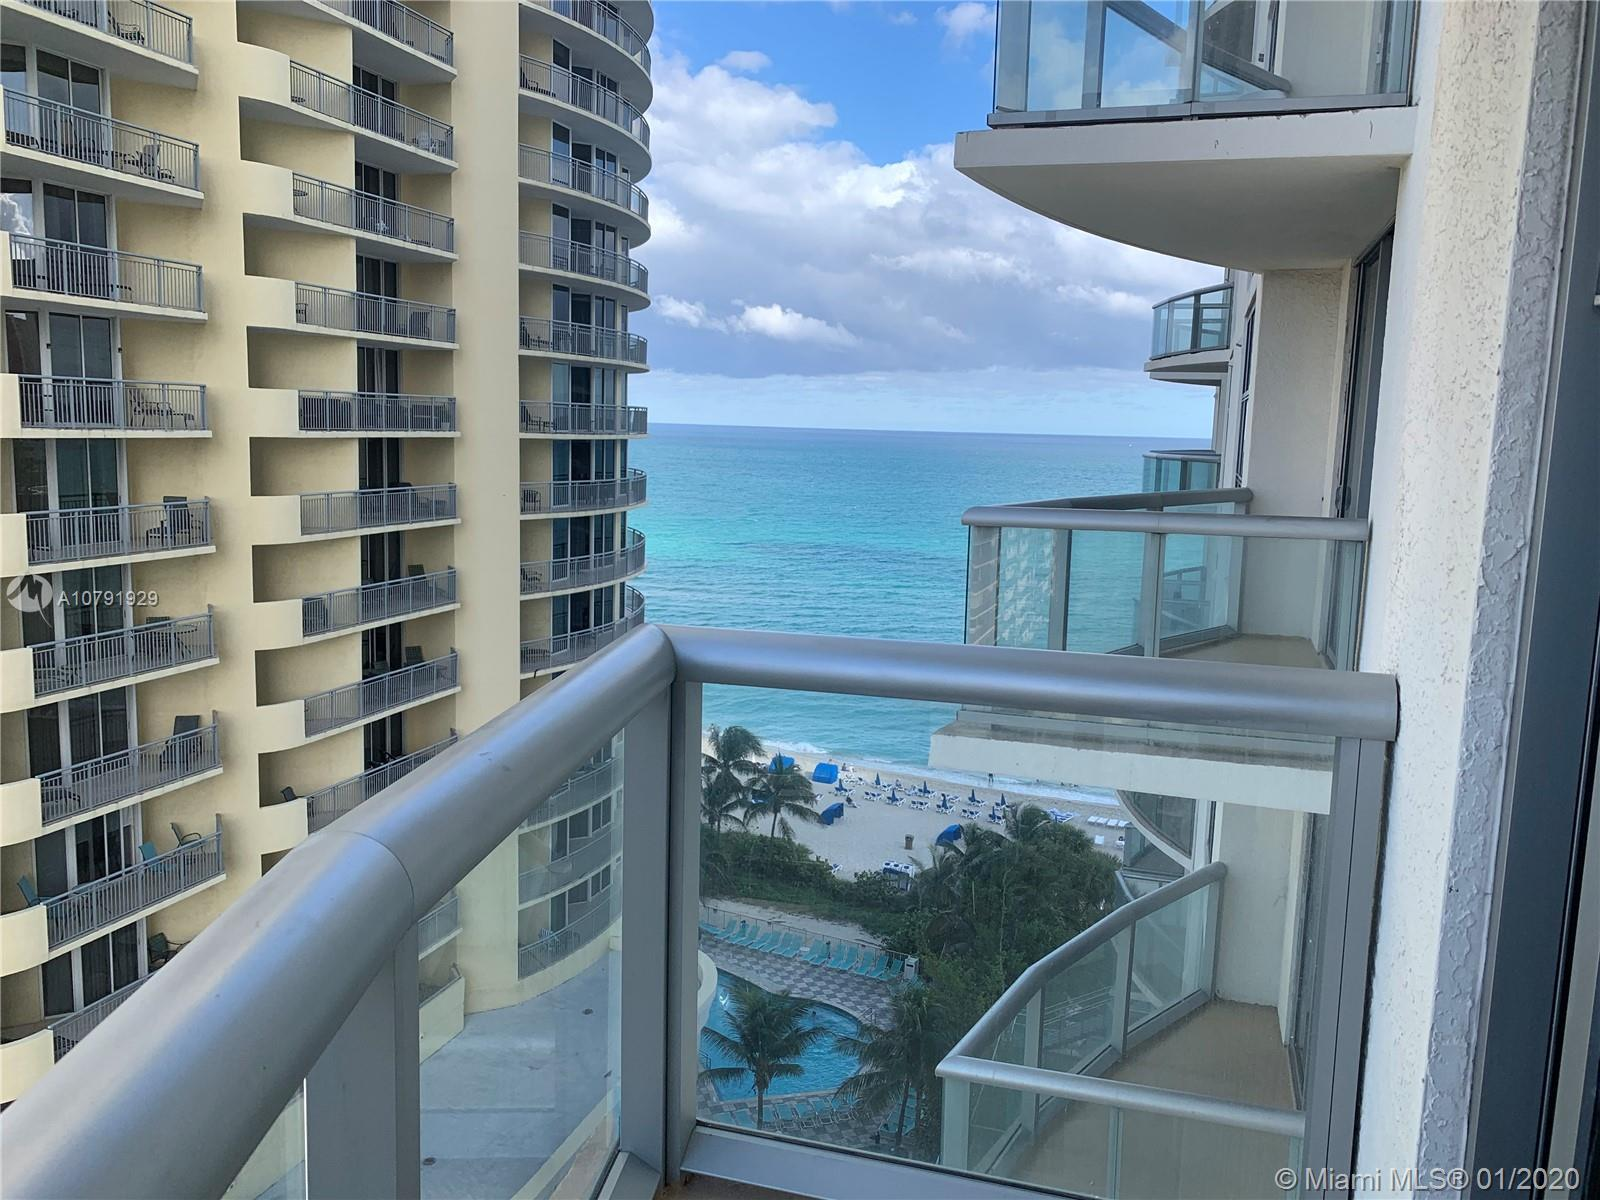 Unit in Condo-Hotel building. 2 Bedrooms/ 2 Bathrooms. Great opportunity for investors. Apartment wi